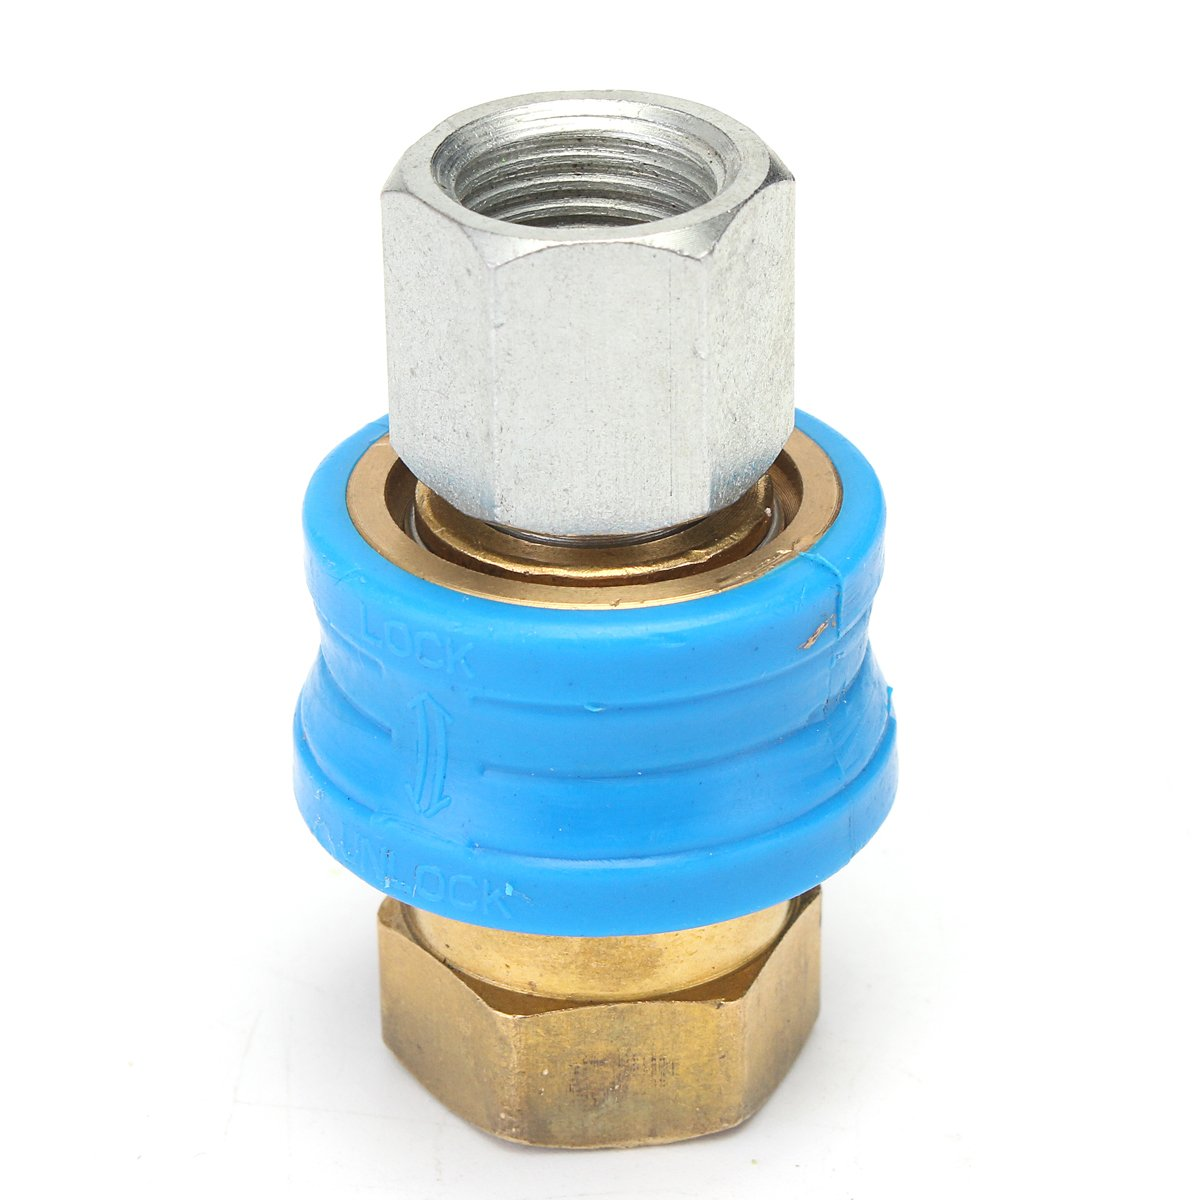 MiguCo Quick Release Compact 1/4F Pressure Washer Couplings by MiguCo